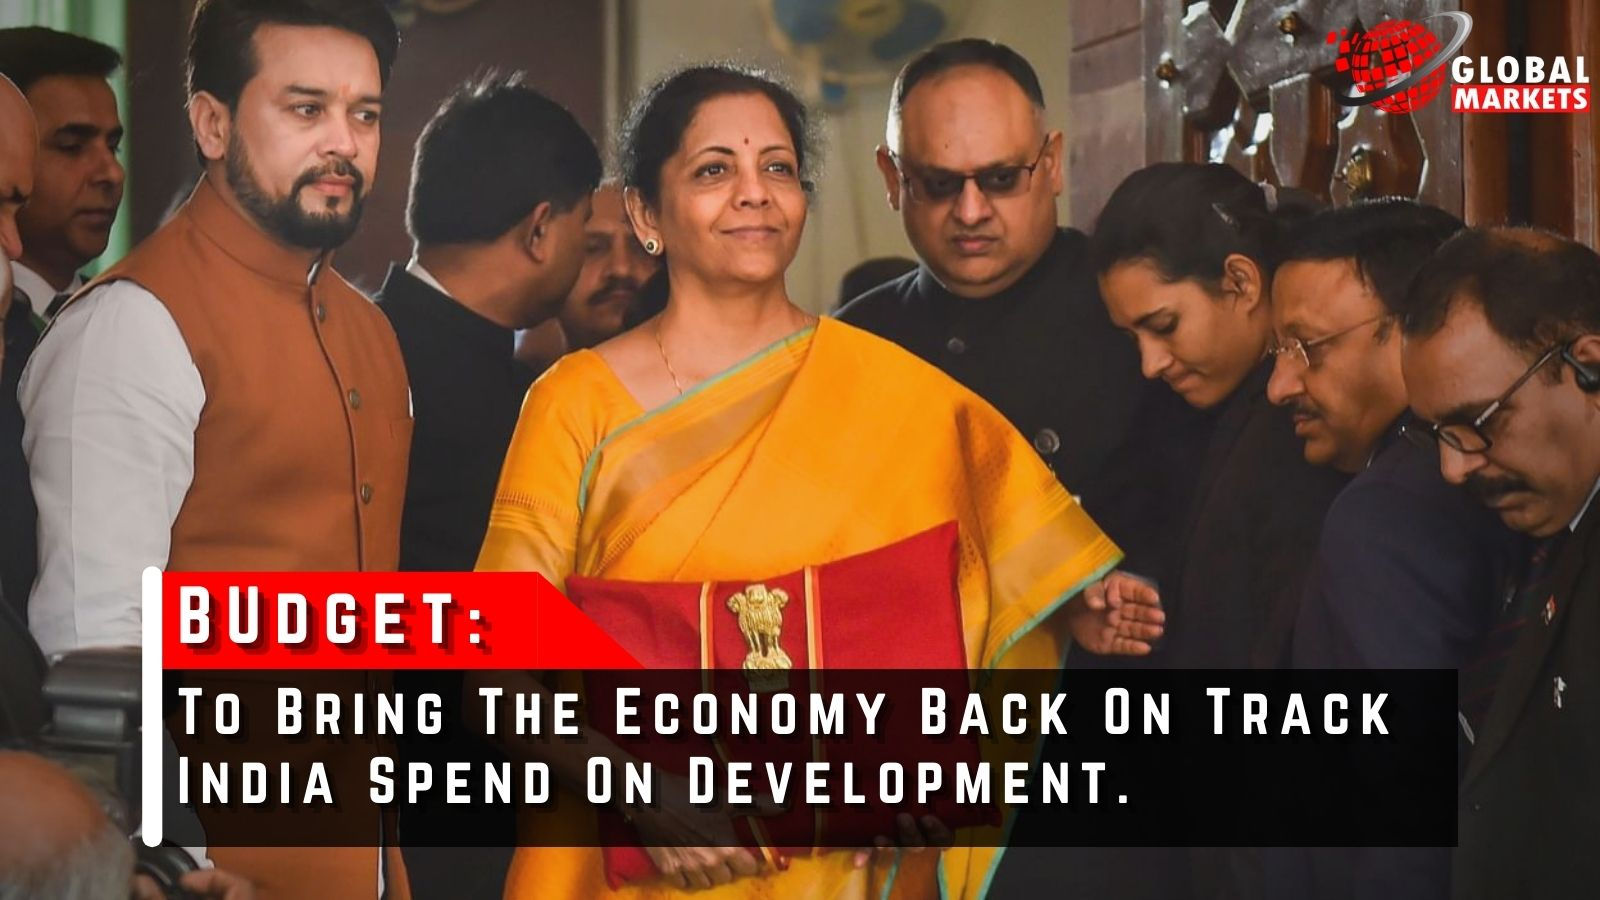 To Bring The Economy Back On Track India Spend On Development.